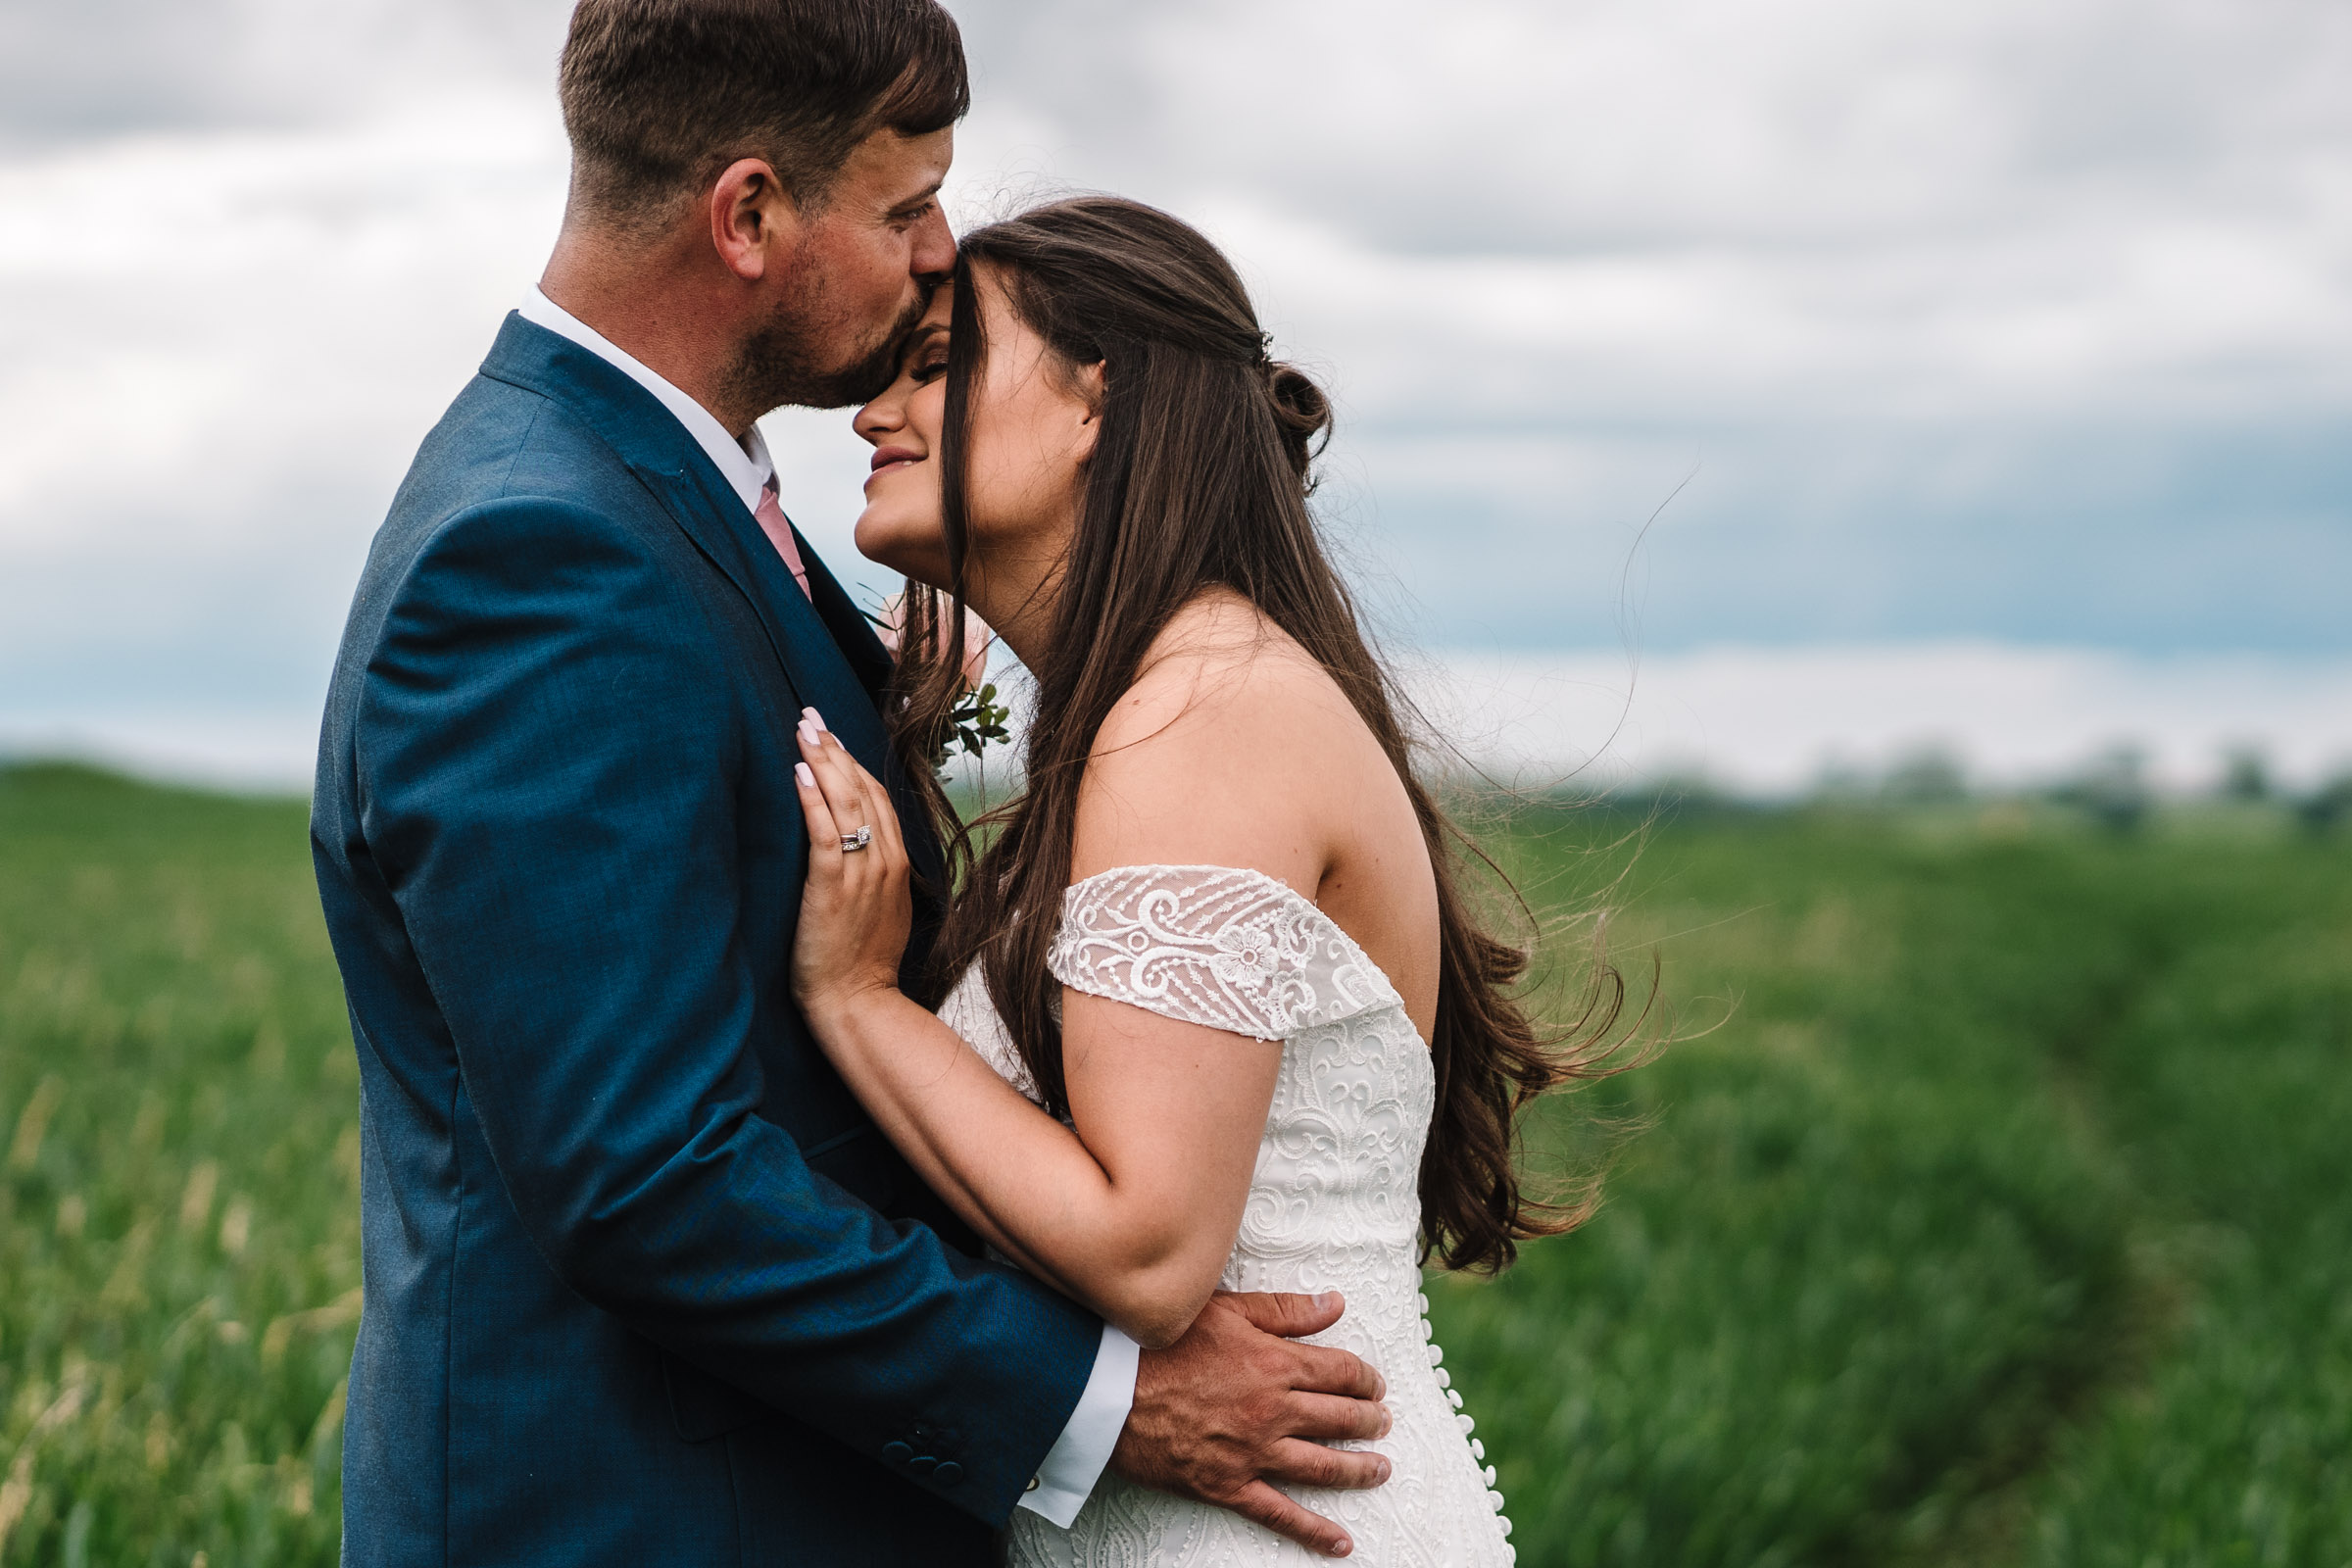 Groom kissing brides forehead, standing in a field